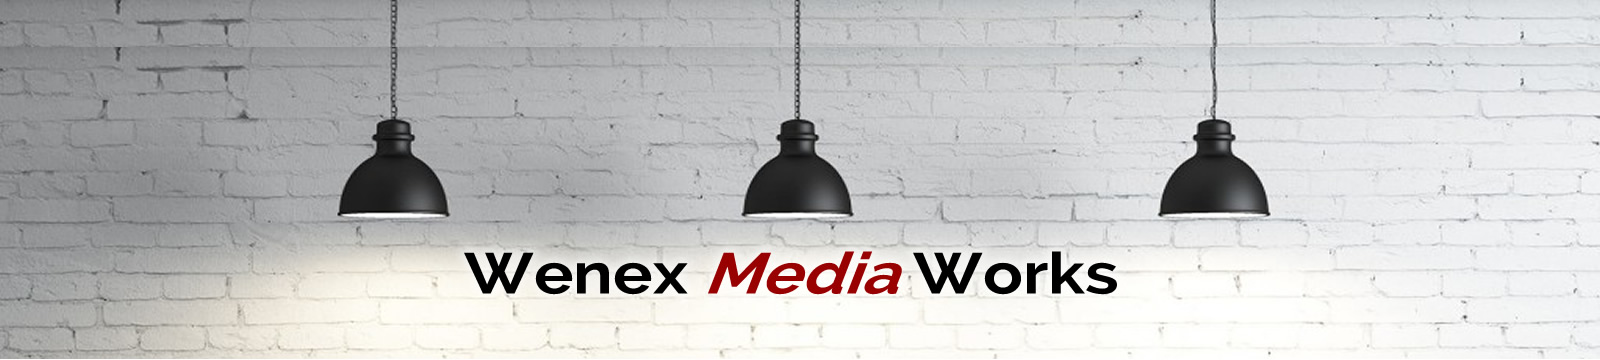 Wenex Media Works Past Projects